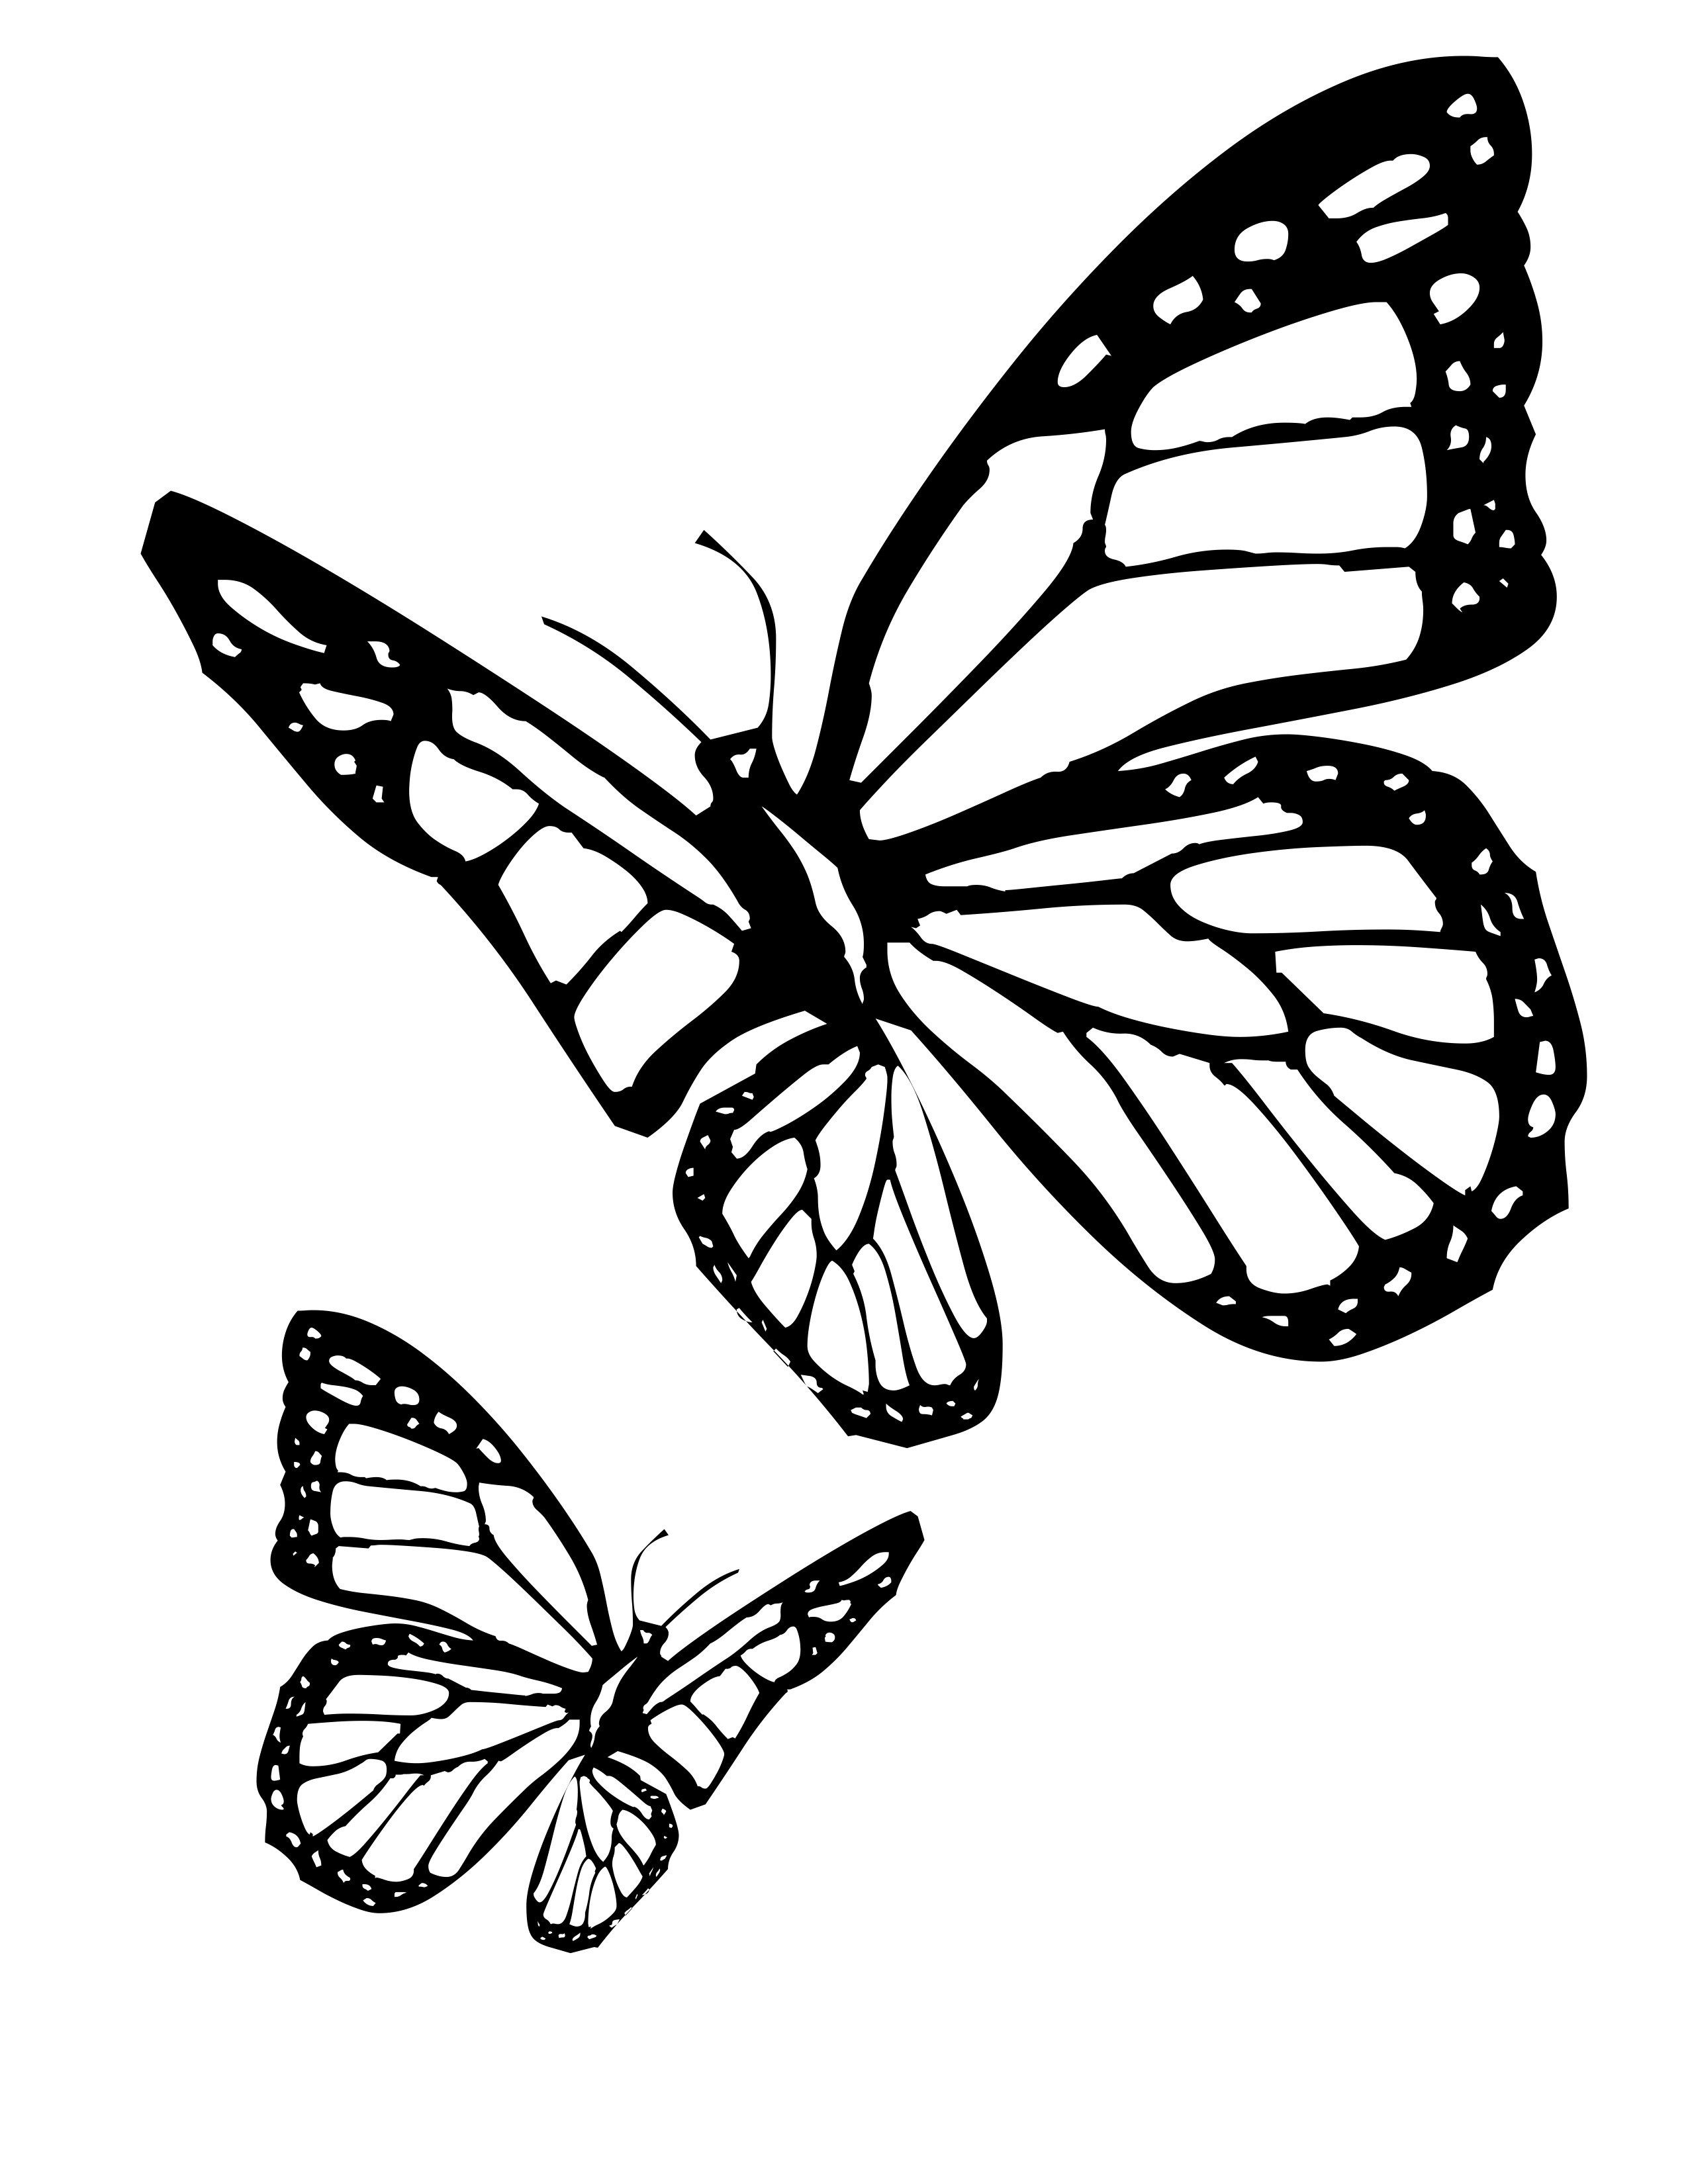 Cool Butterfly Coloring Pages Ideas For Girls And Boys Free Coloring Sheets Butterfly Coloring Page Butterfly Tattoo Stencil Butterfly Drawing Outline